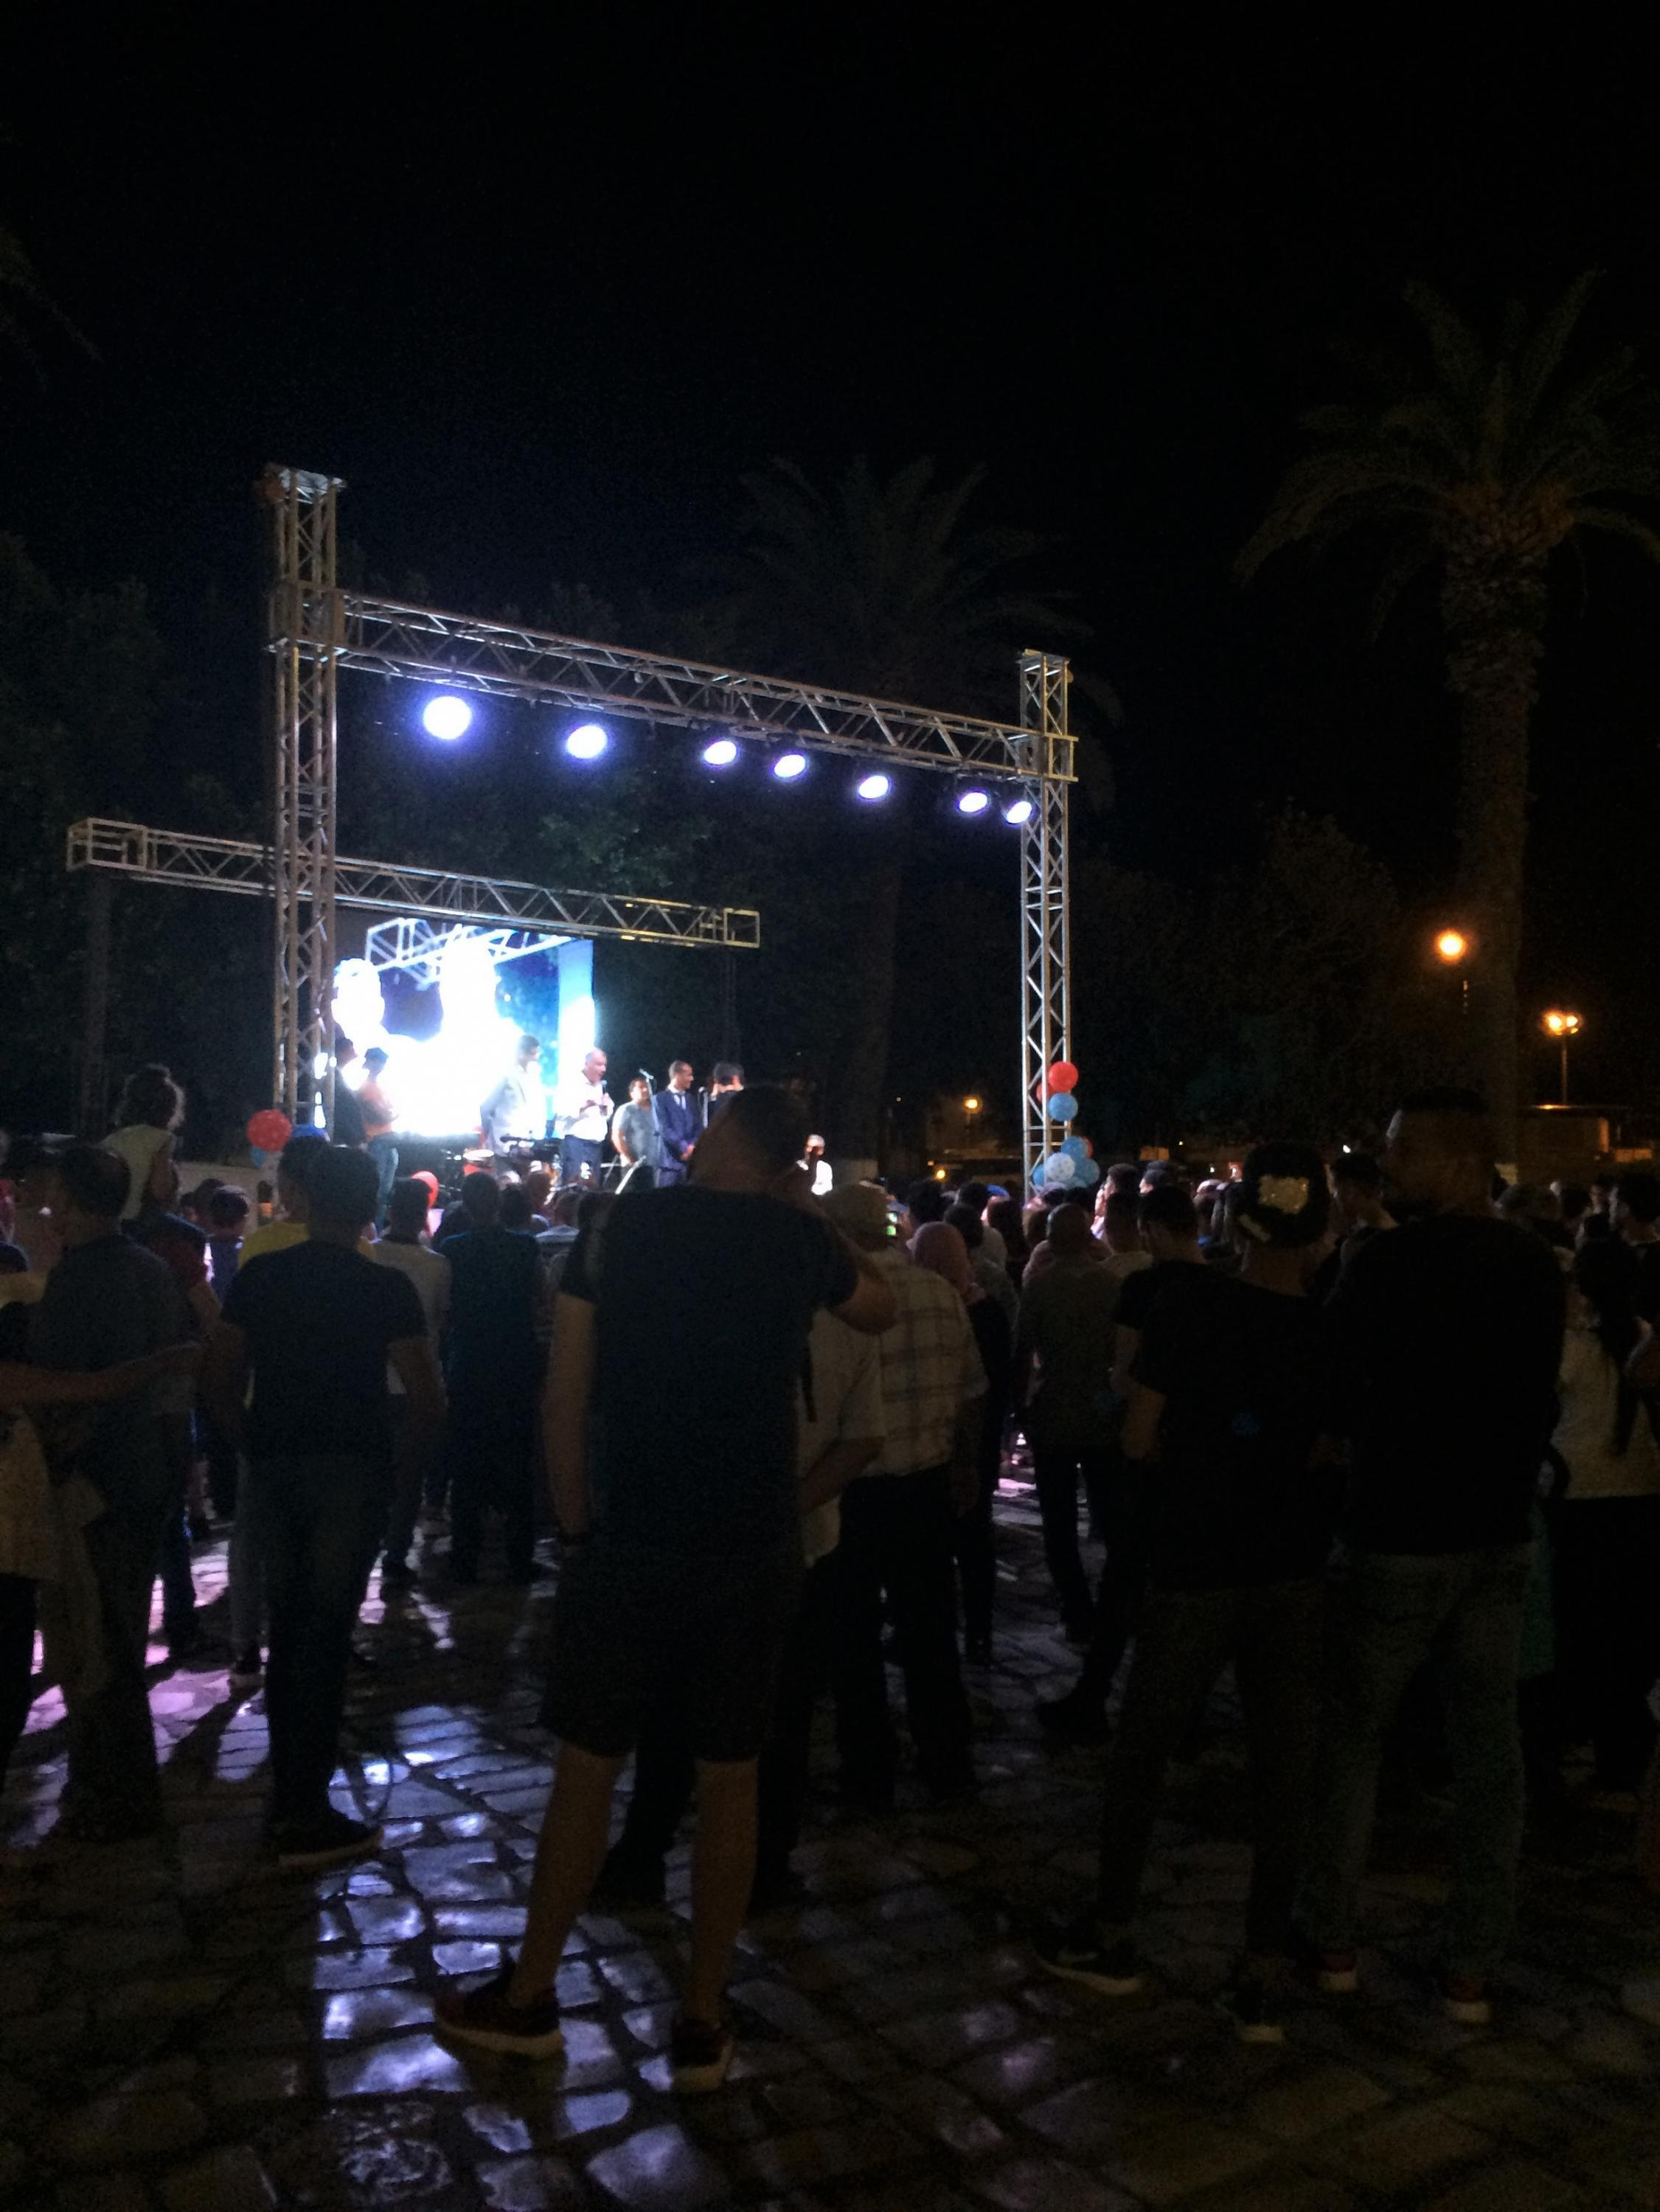 Concert on the final day of electoral campaigning in Sousse, September 13, 2019